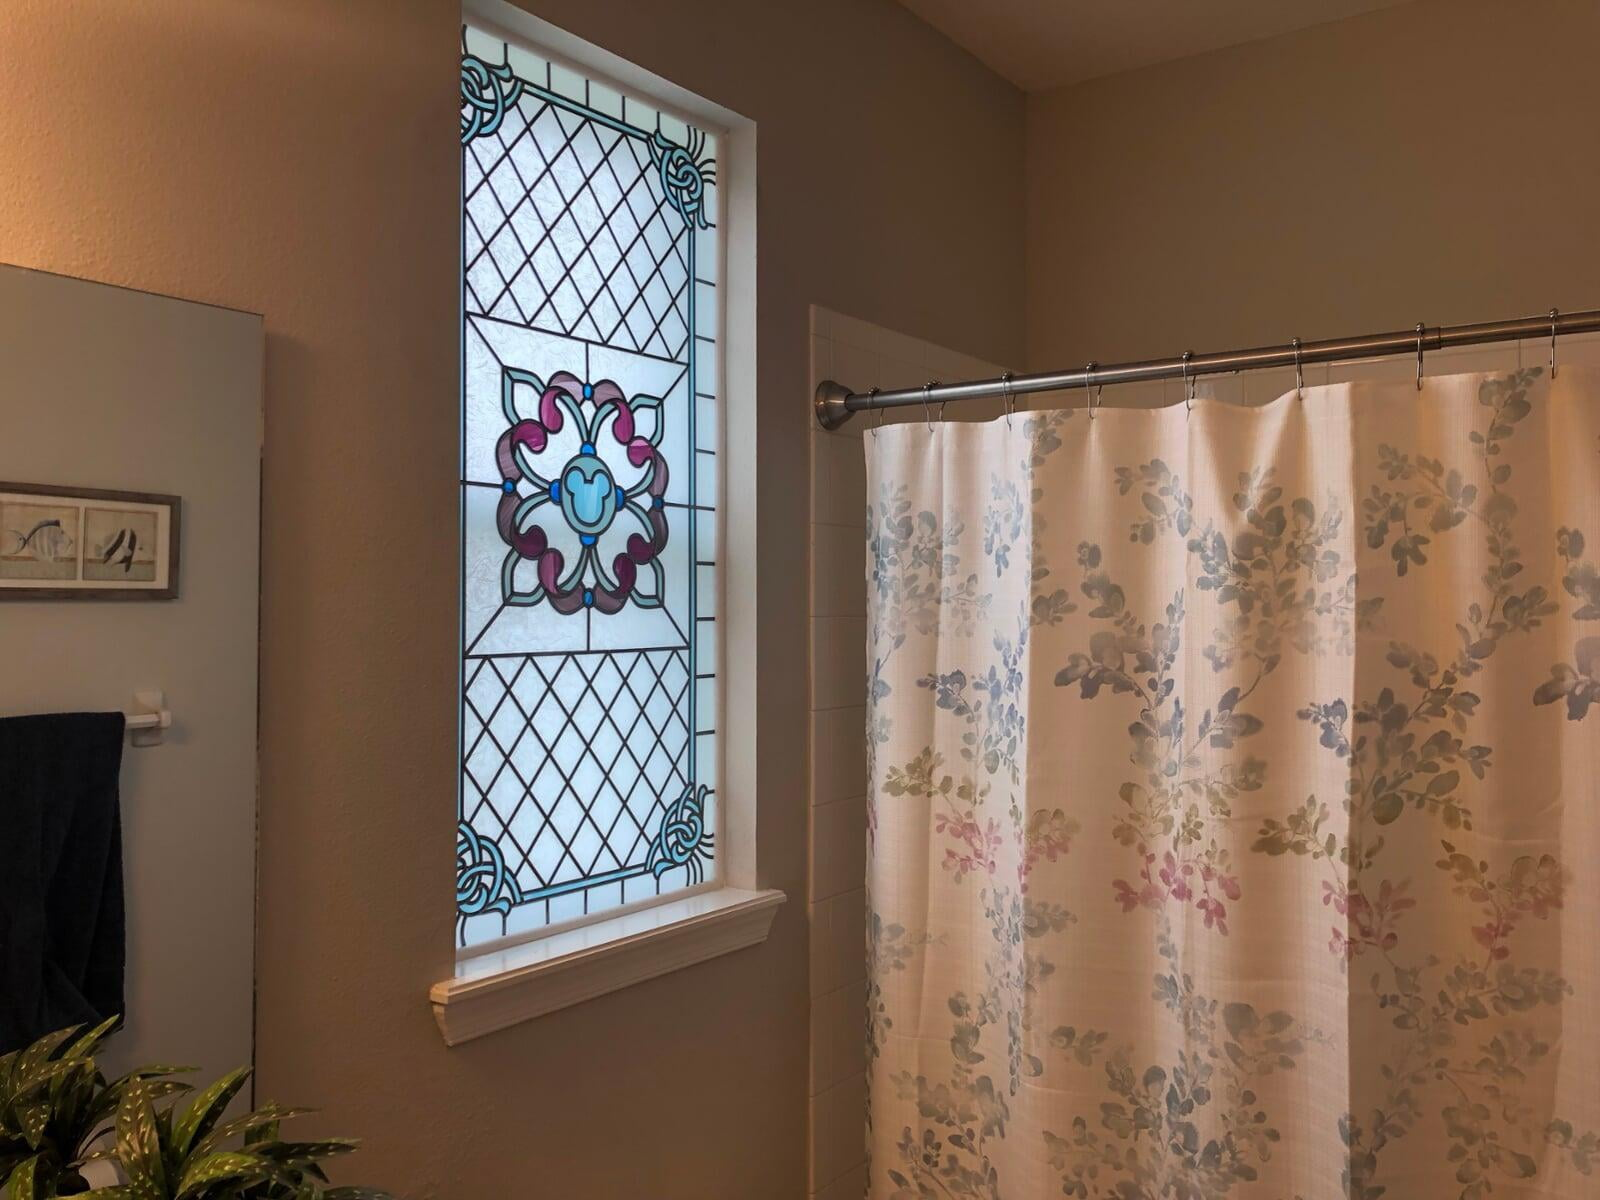 Contemporary bathroom window in decorative glass